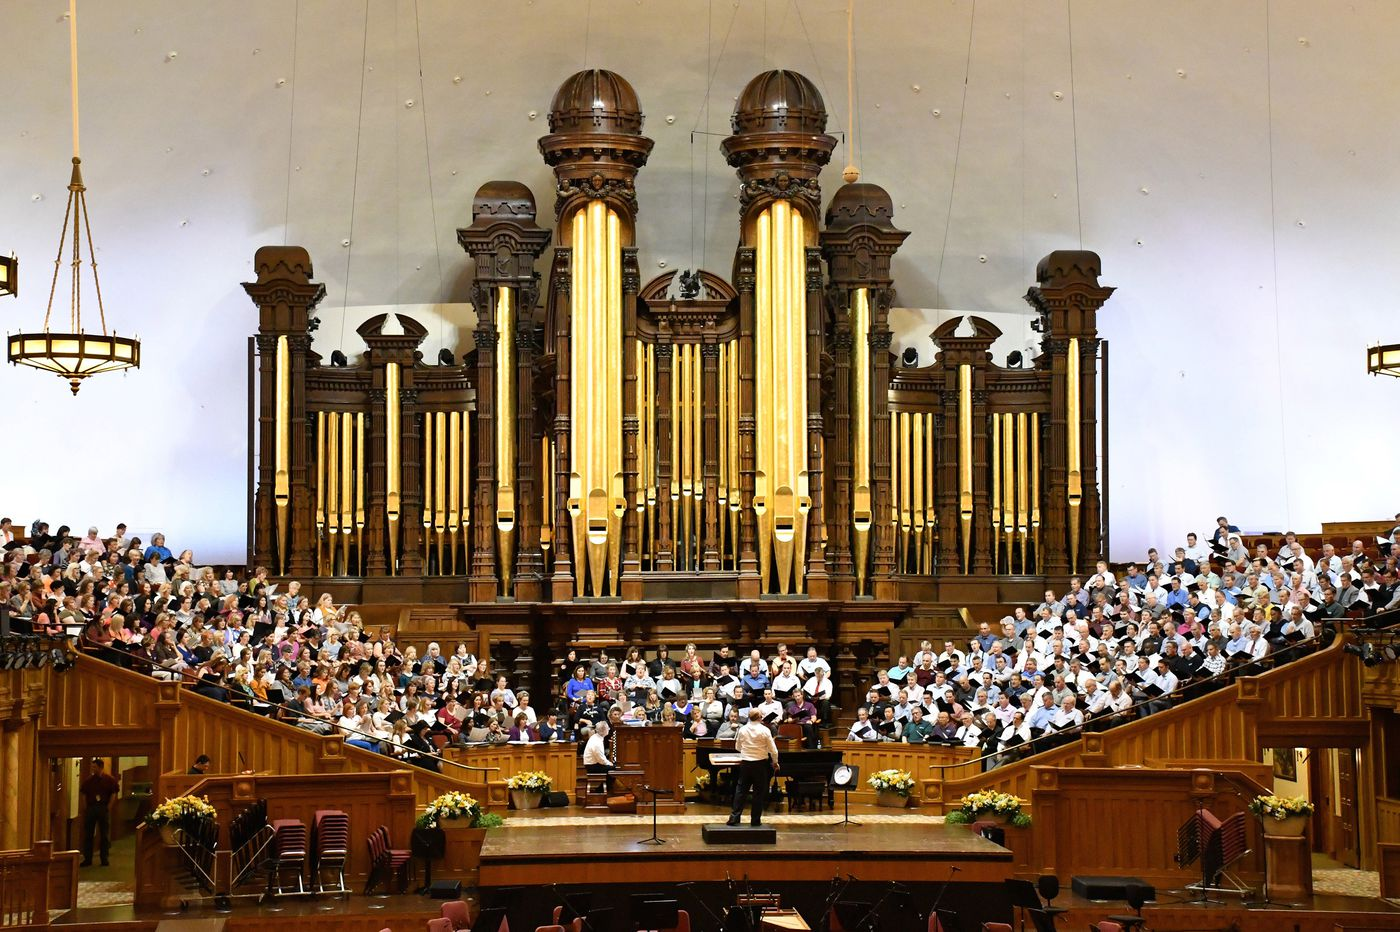 In the Salt Lake tabernacle Brigham Young built, 360 voices blend with frontier history